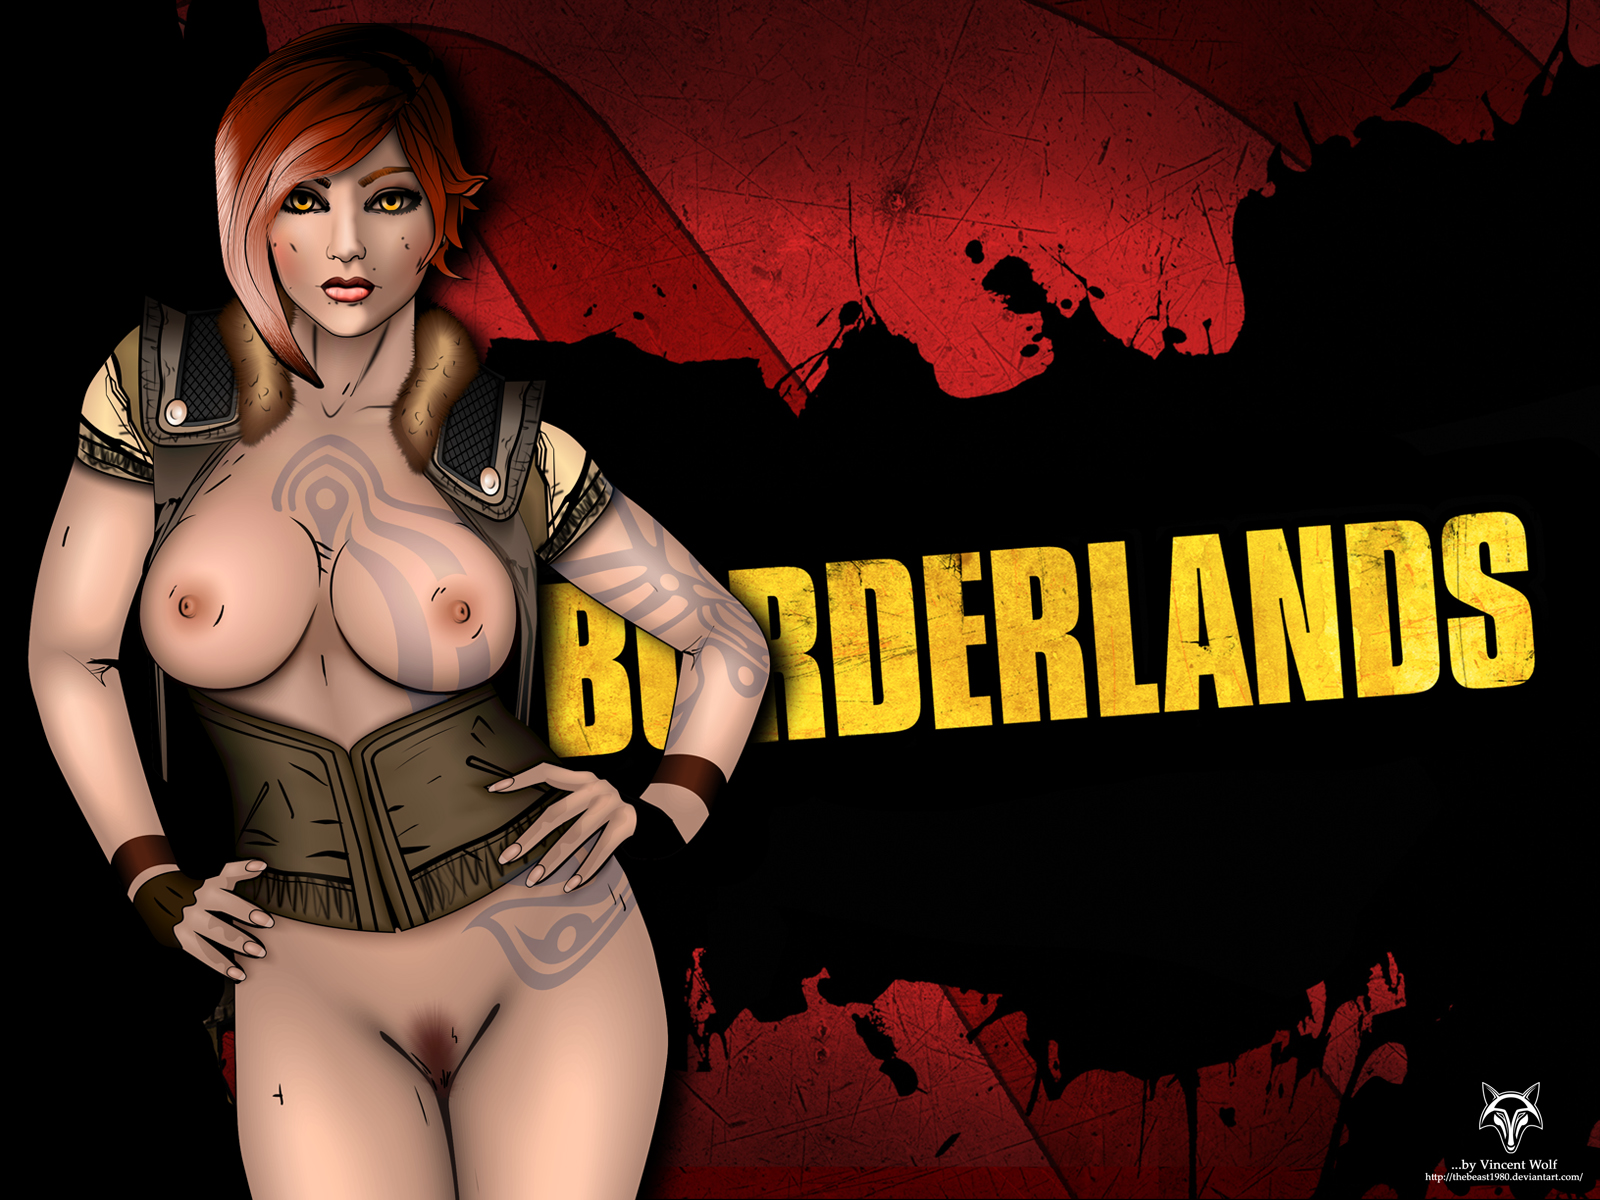 Borderlands lilith porno erotic scenes